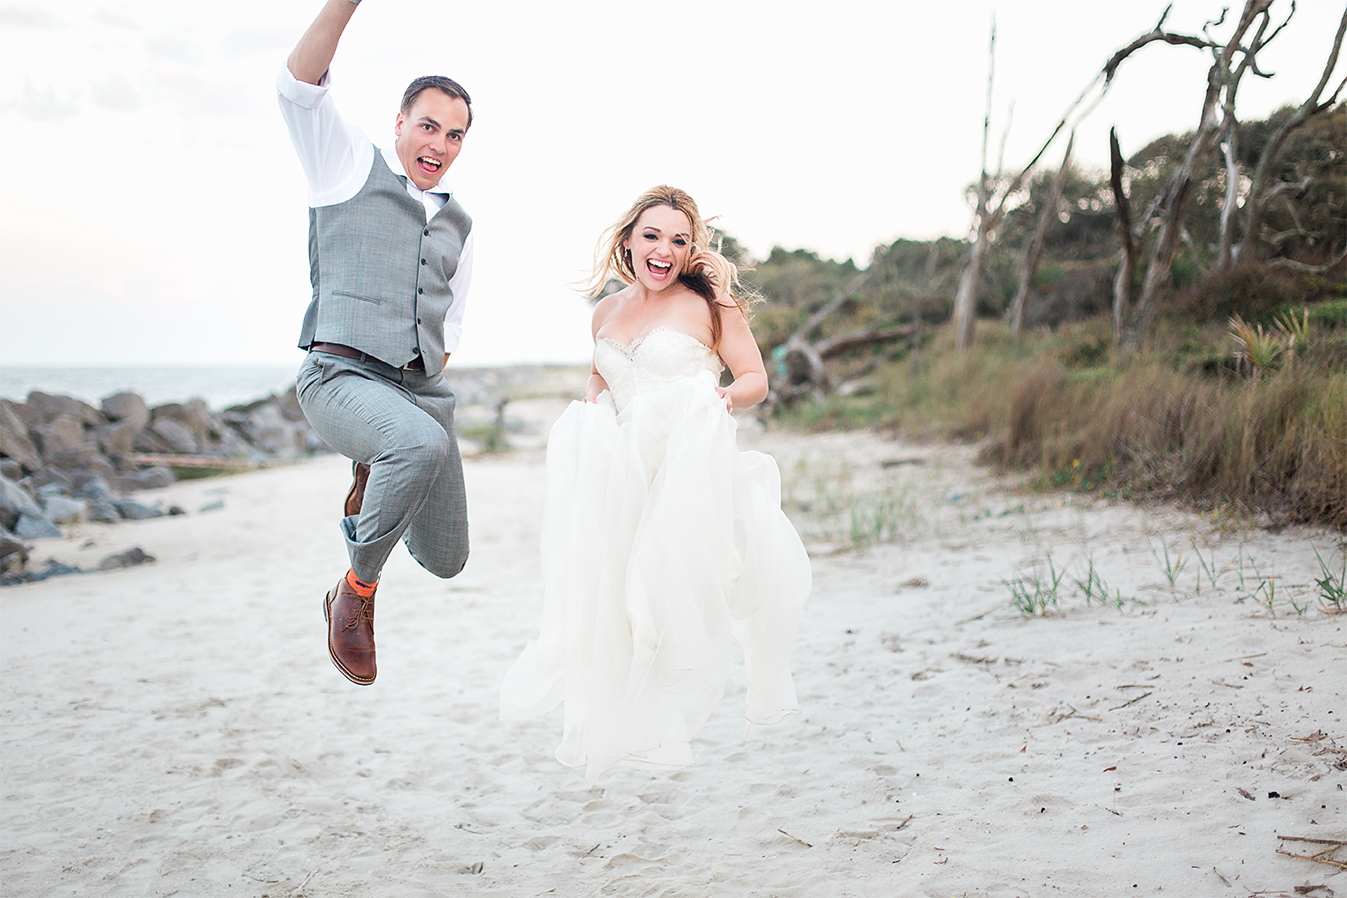 Bride and groom jumping in Driftwood beach after their wedding ceremony.